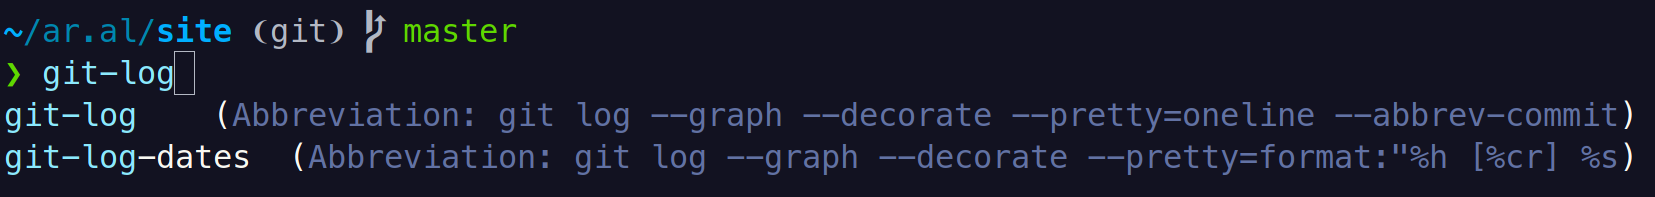 Screenshot of Fish shell suggesting abbreviation completions for the command get-lo: git-log (Abbreviation: git log --graph --decorate --pretty=oneline --abbrev-commit) and git-log-dates  (Abbreviation: git log --graph --decorate --pretty=format: